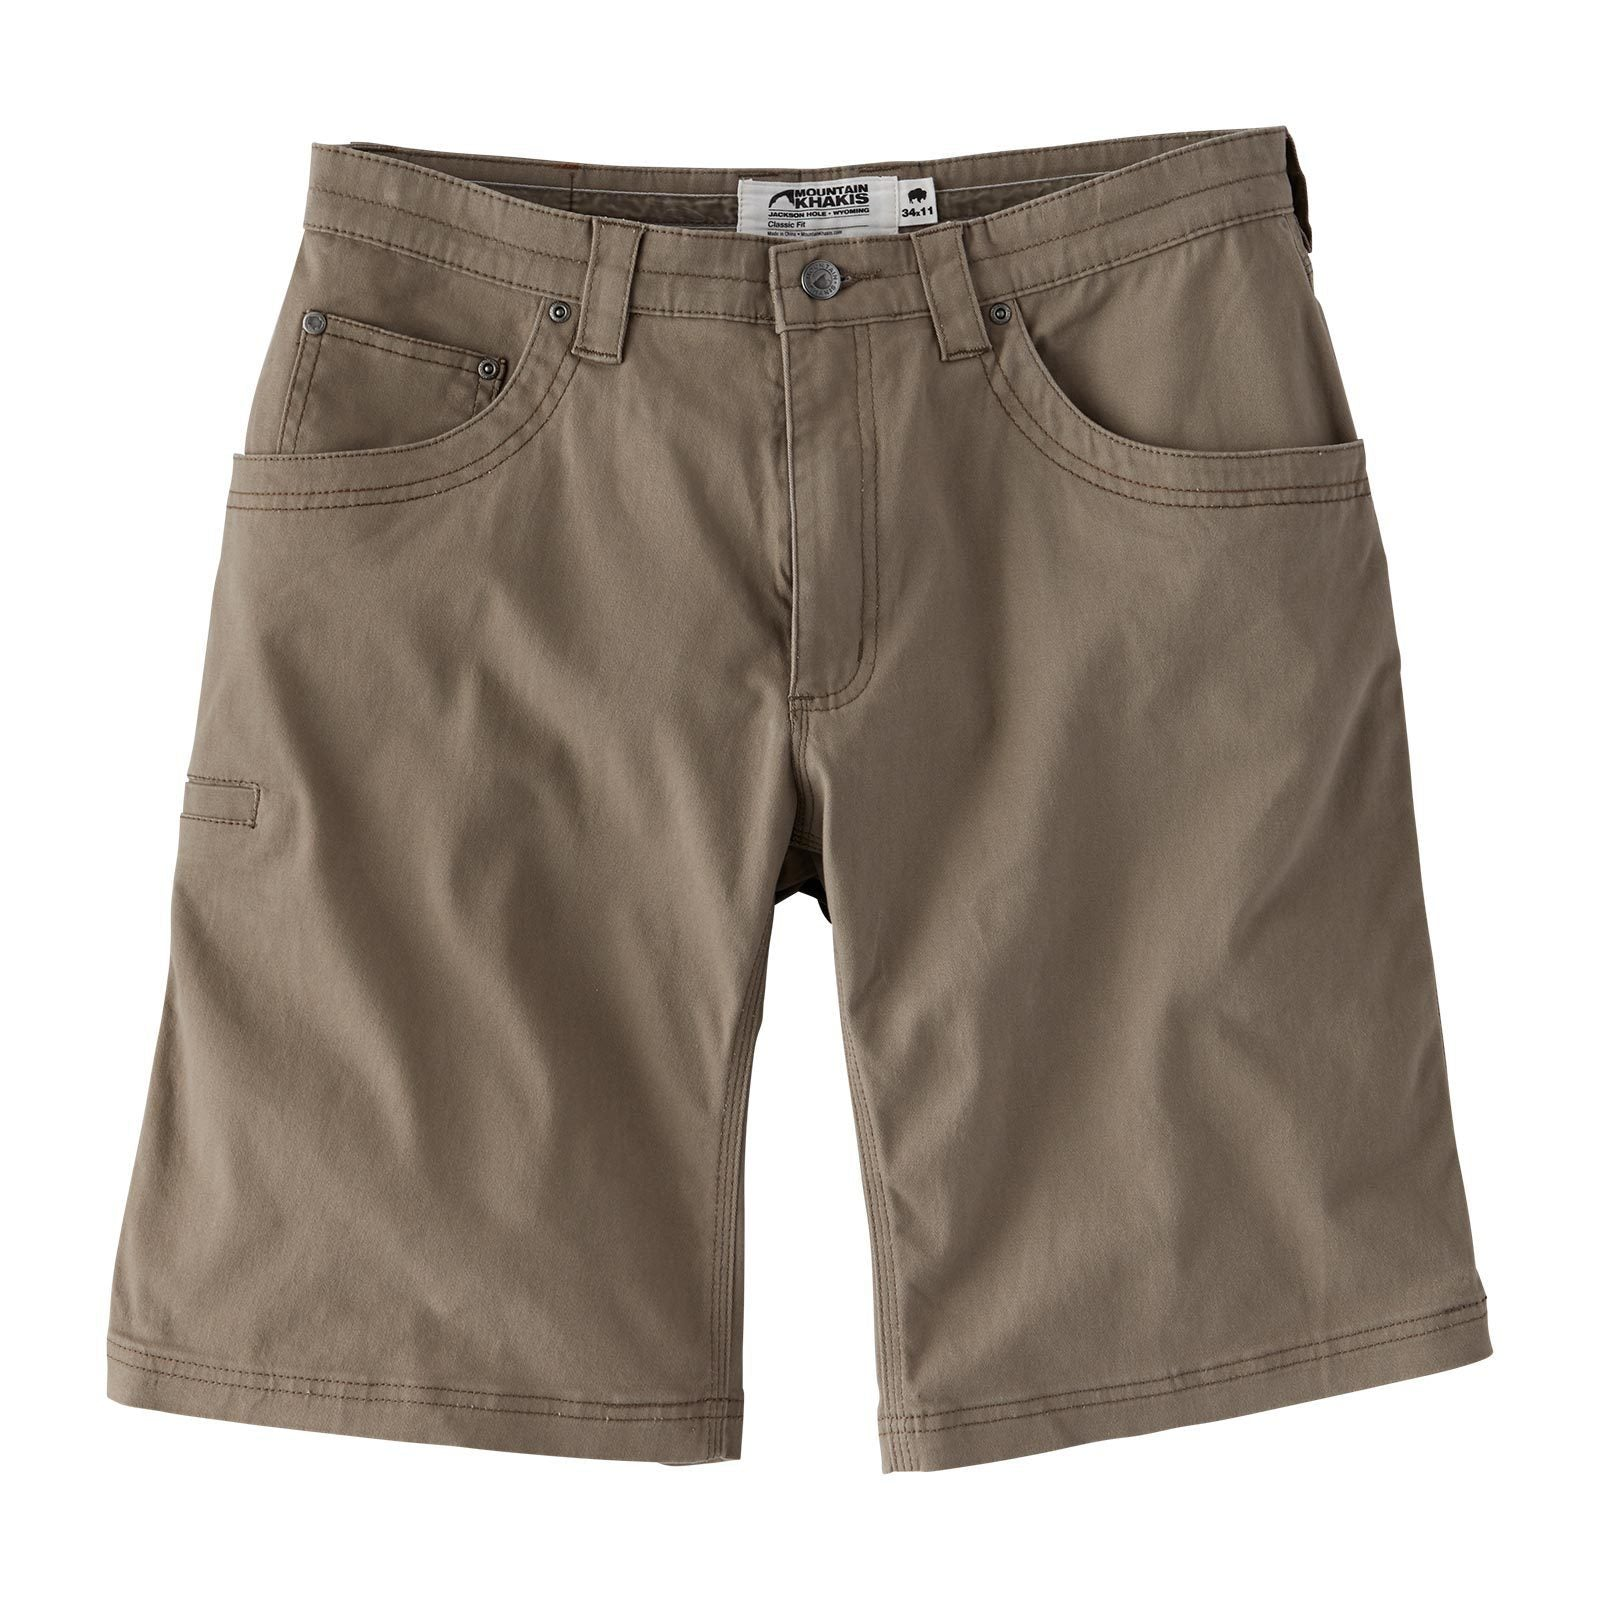 Mountain Khakis: Frima Classic Fit Men's Short